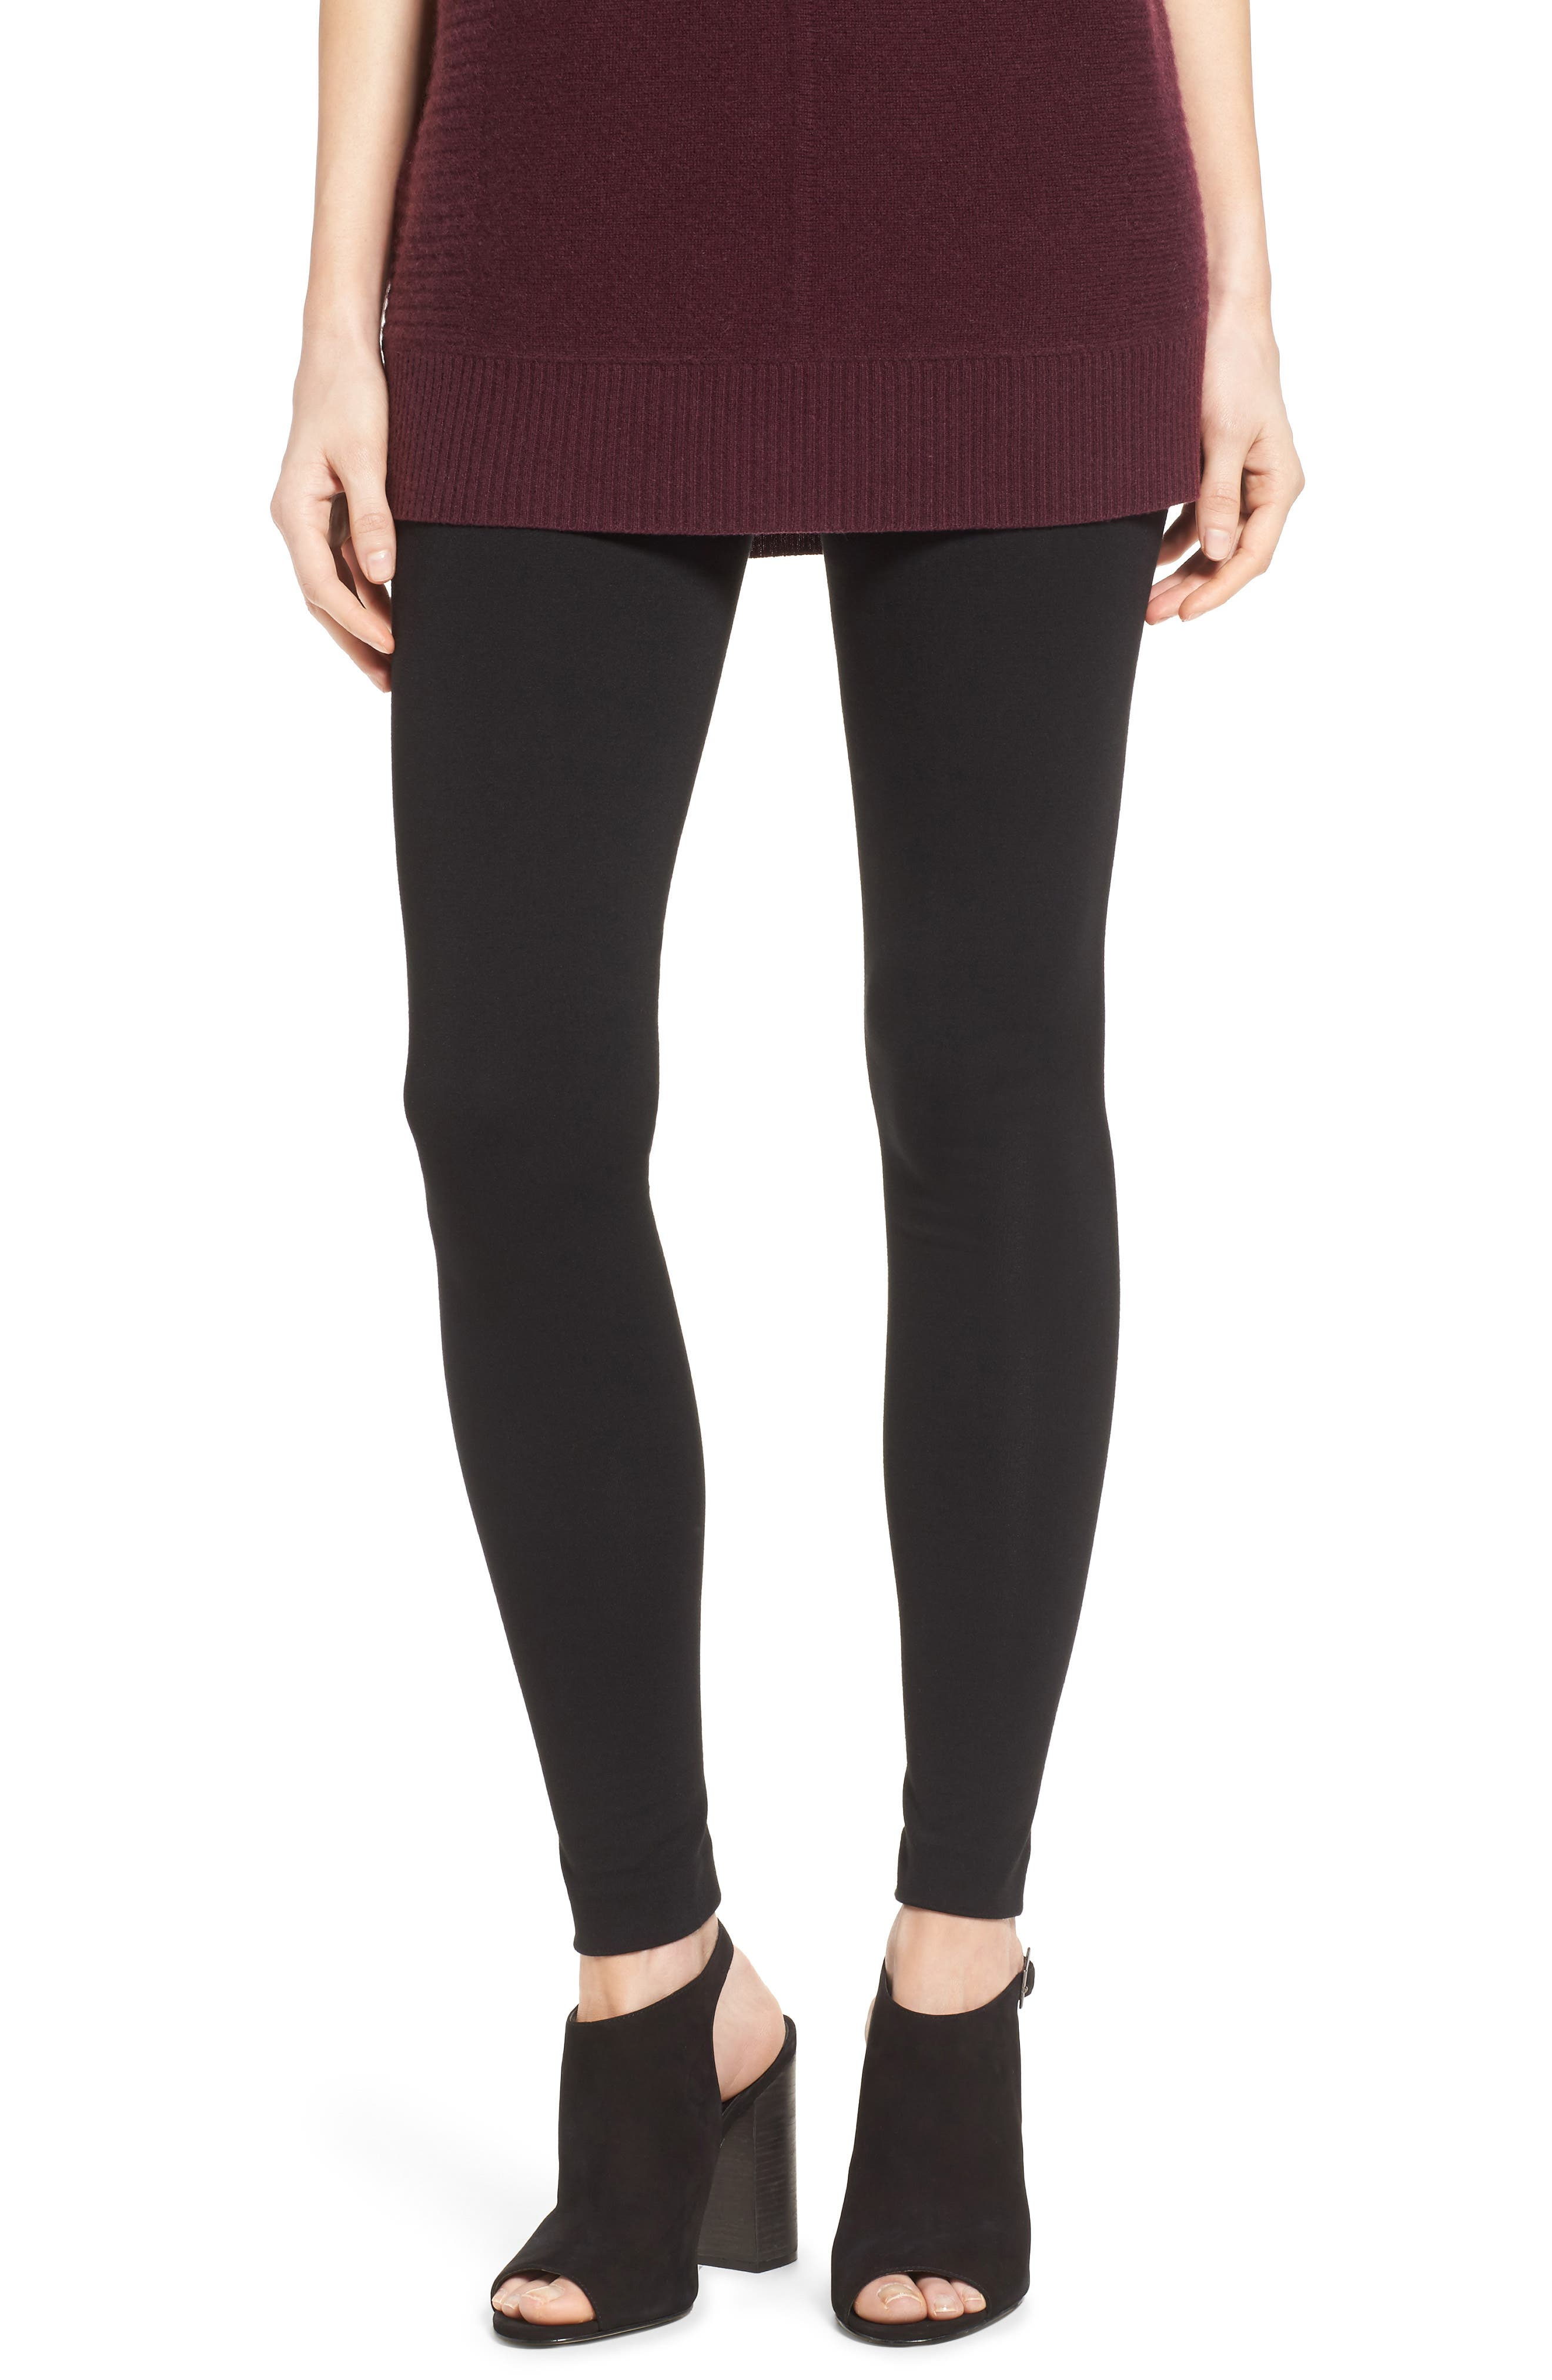 Main Image - Two by Vince Camuto Seamed Back Leggings (Regular & Petite)